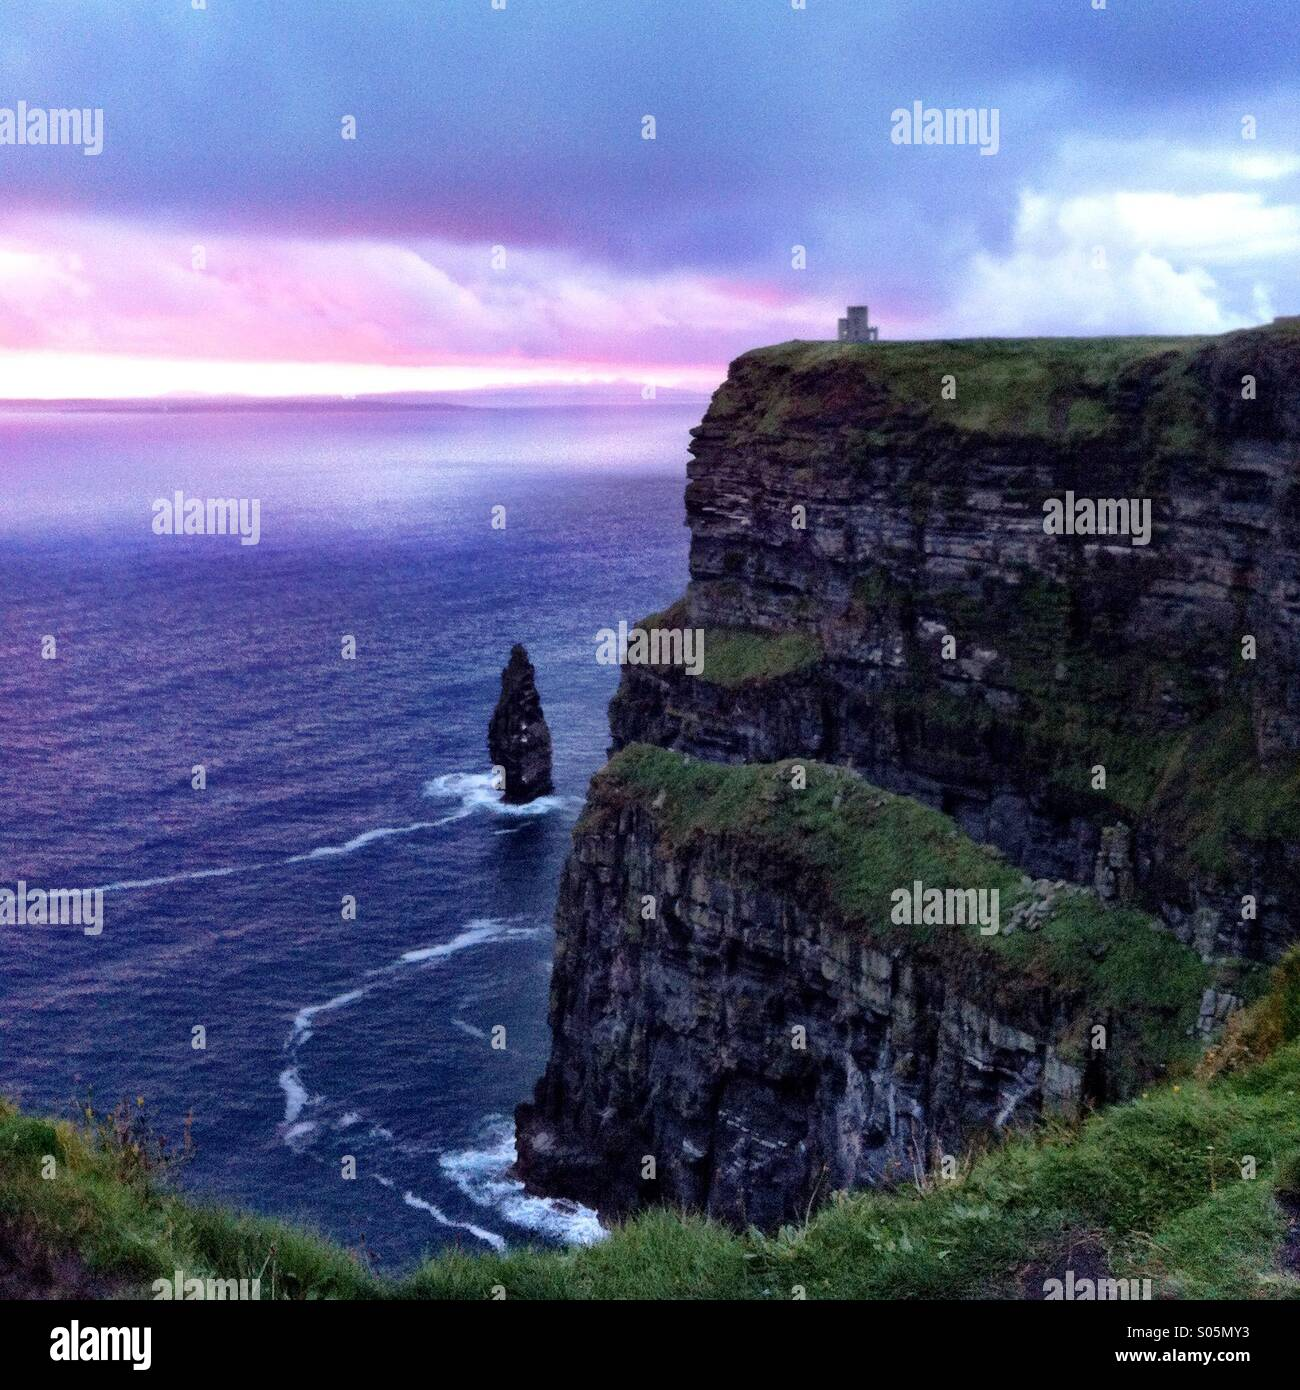 The cliffs of moher at sunset. County Clare, Ireland. - Stock Image